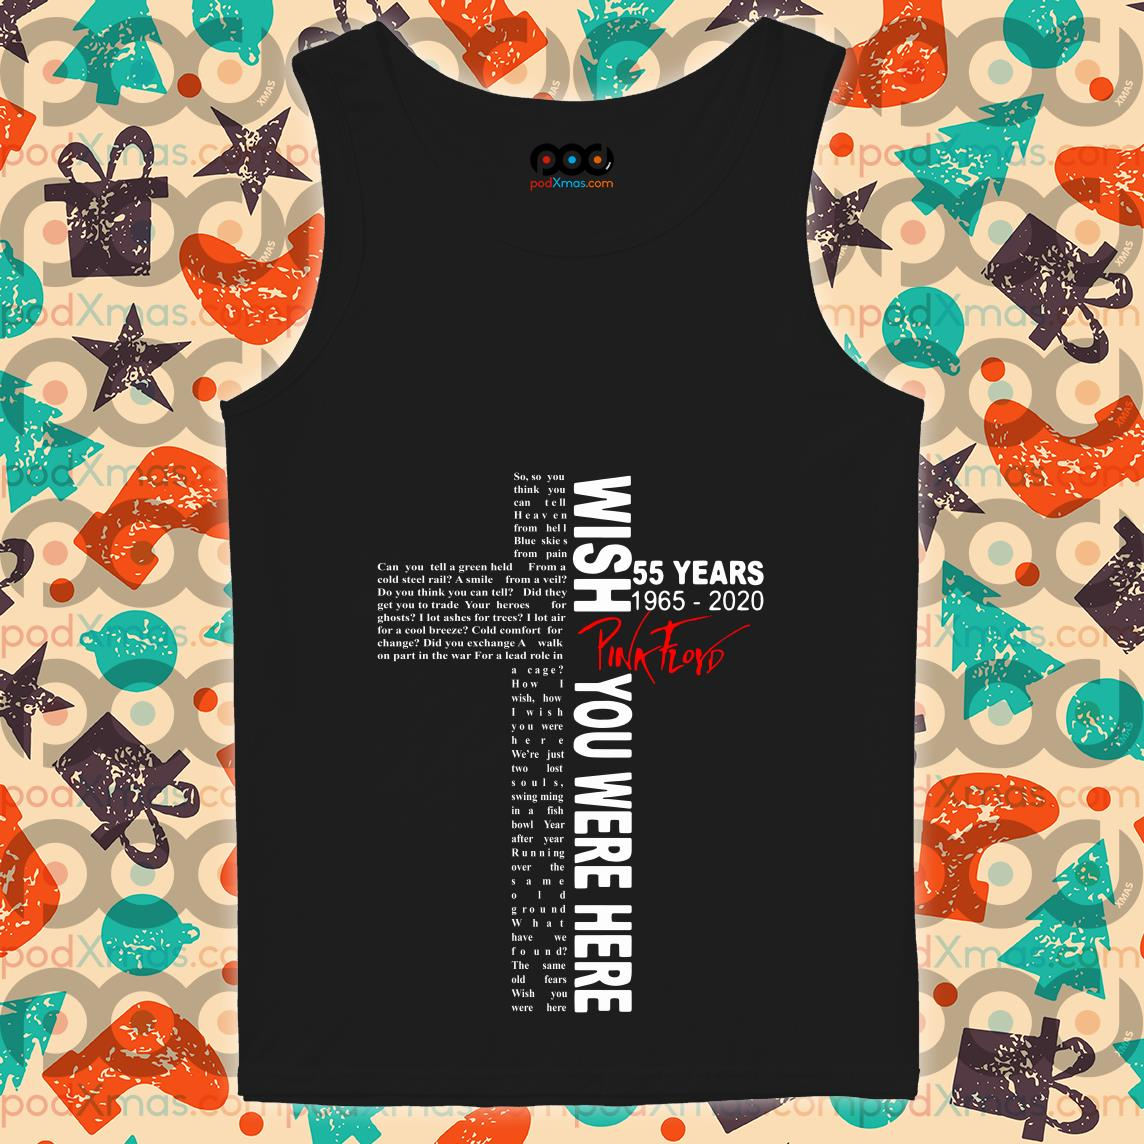 Wish you were here lyrics by Pink Floyd 55 years 1965 2020 tank top